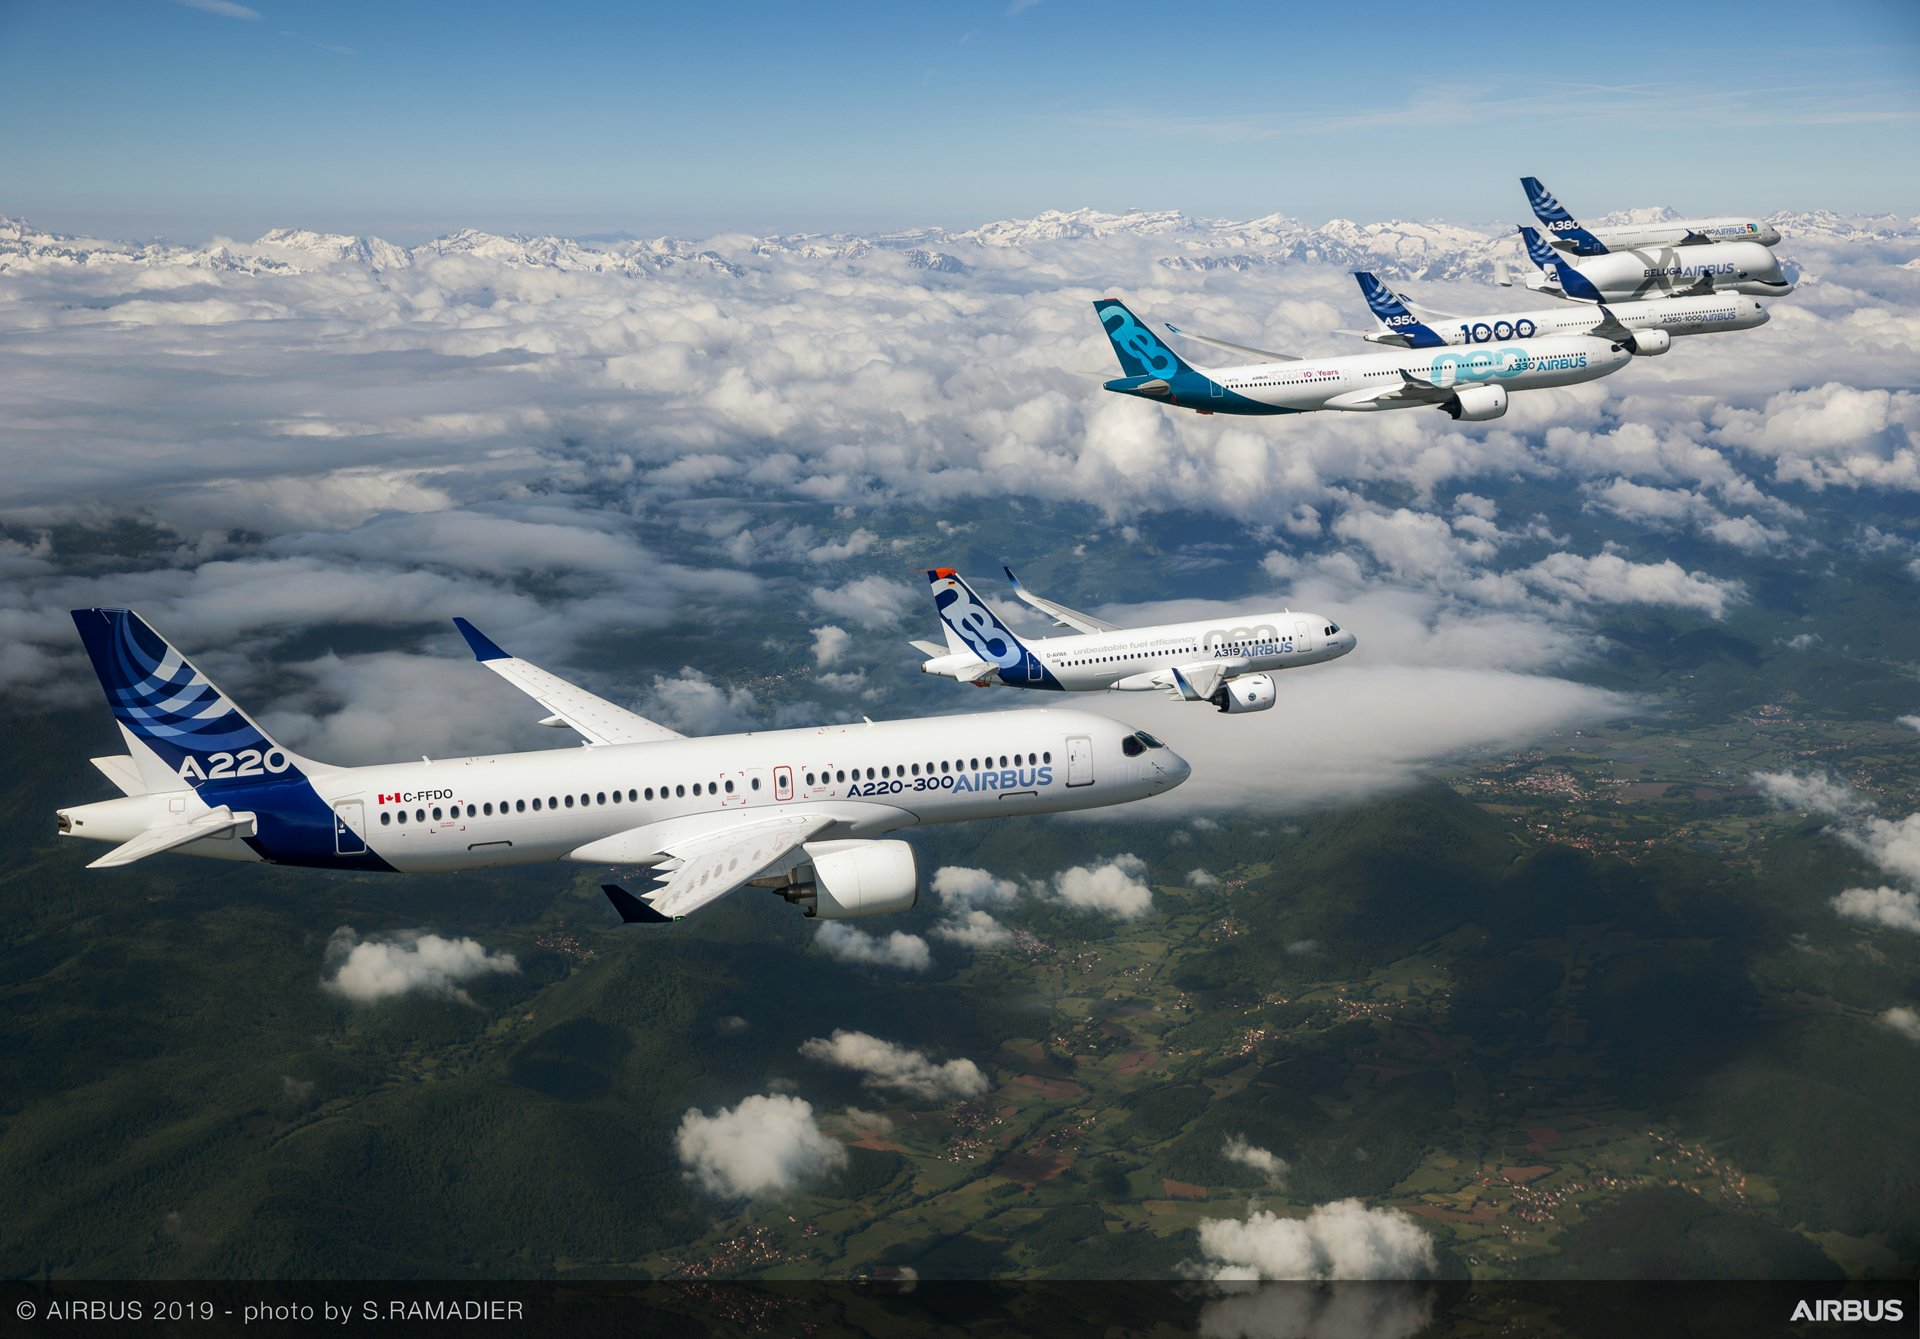 In celebration of the company's 50th anniversary in 2019, Airbus conducted a special formation flight with representatives from each member of its in-production commercial aircraft product line – A220-300, A319neo, A330-900, A350-1000 and A380 – plus the next-generation BelugaXL airlifter